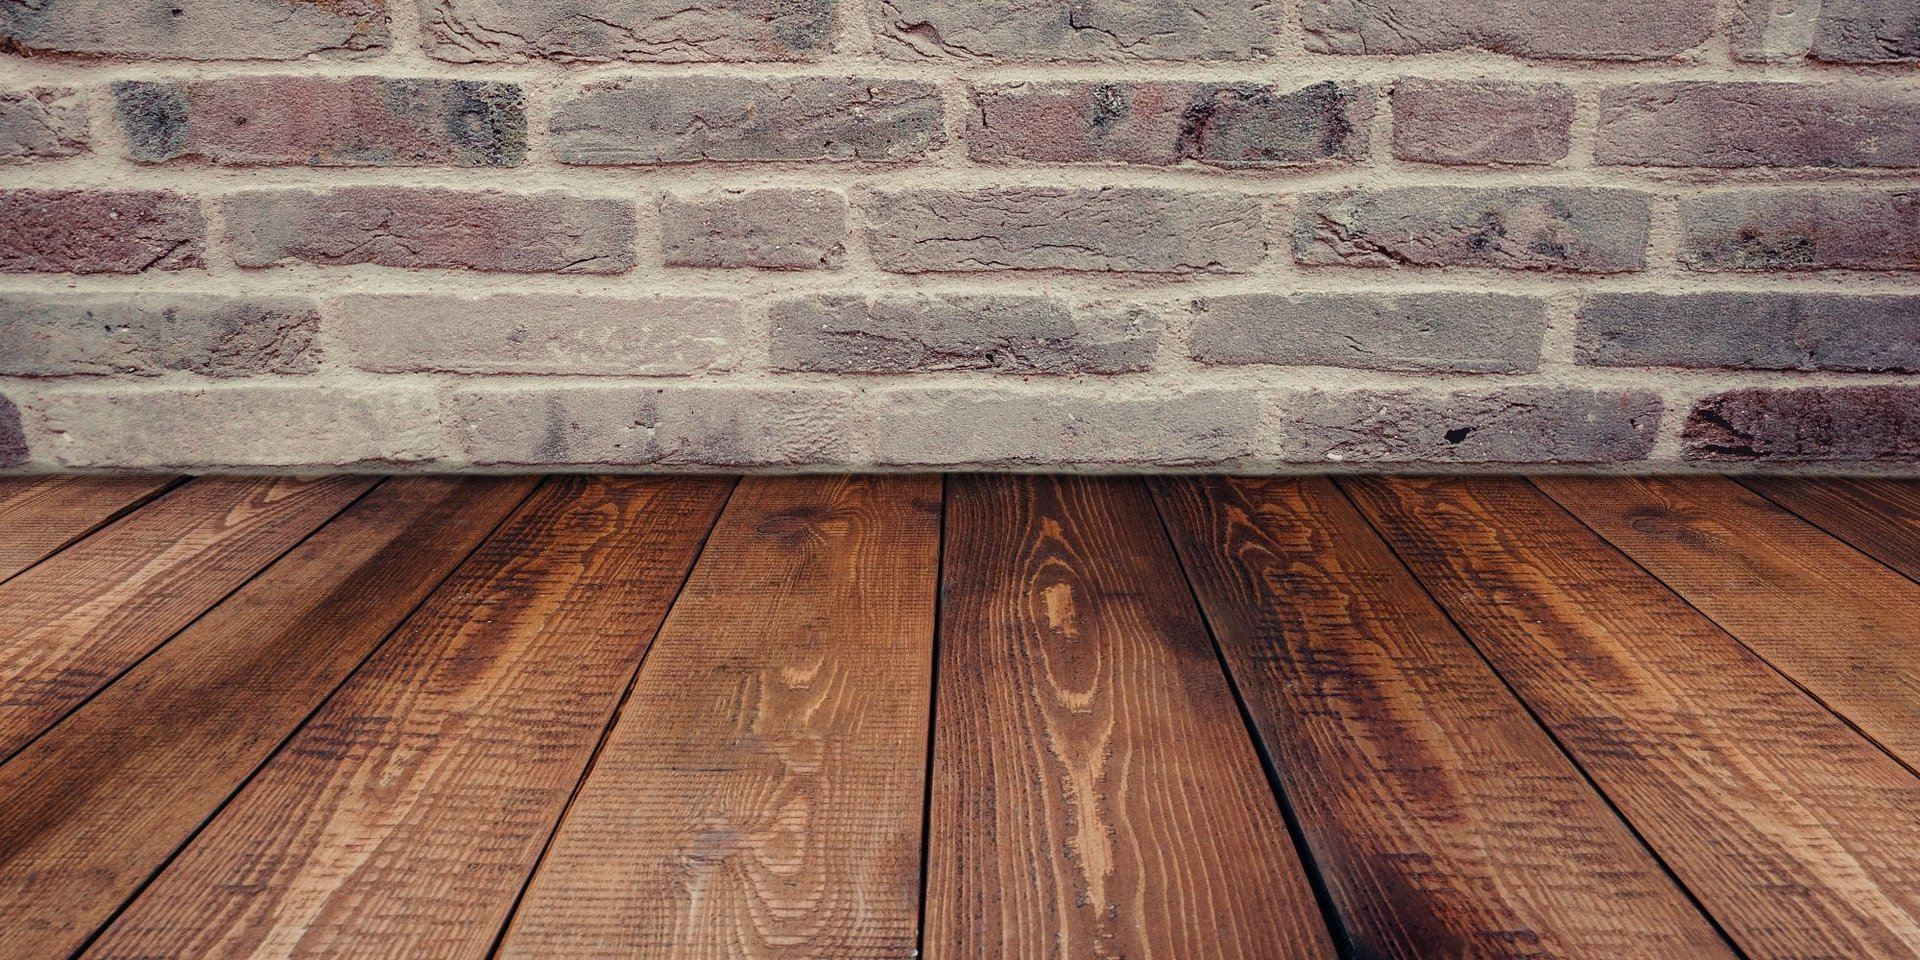 Floor boards in your house in Gold Coast that the termites eat